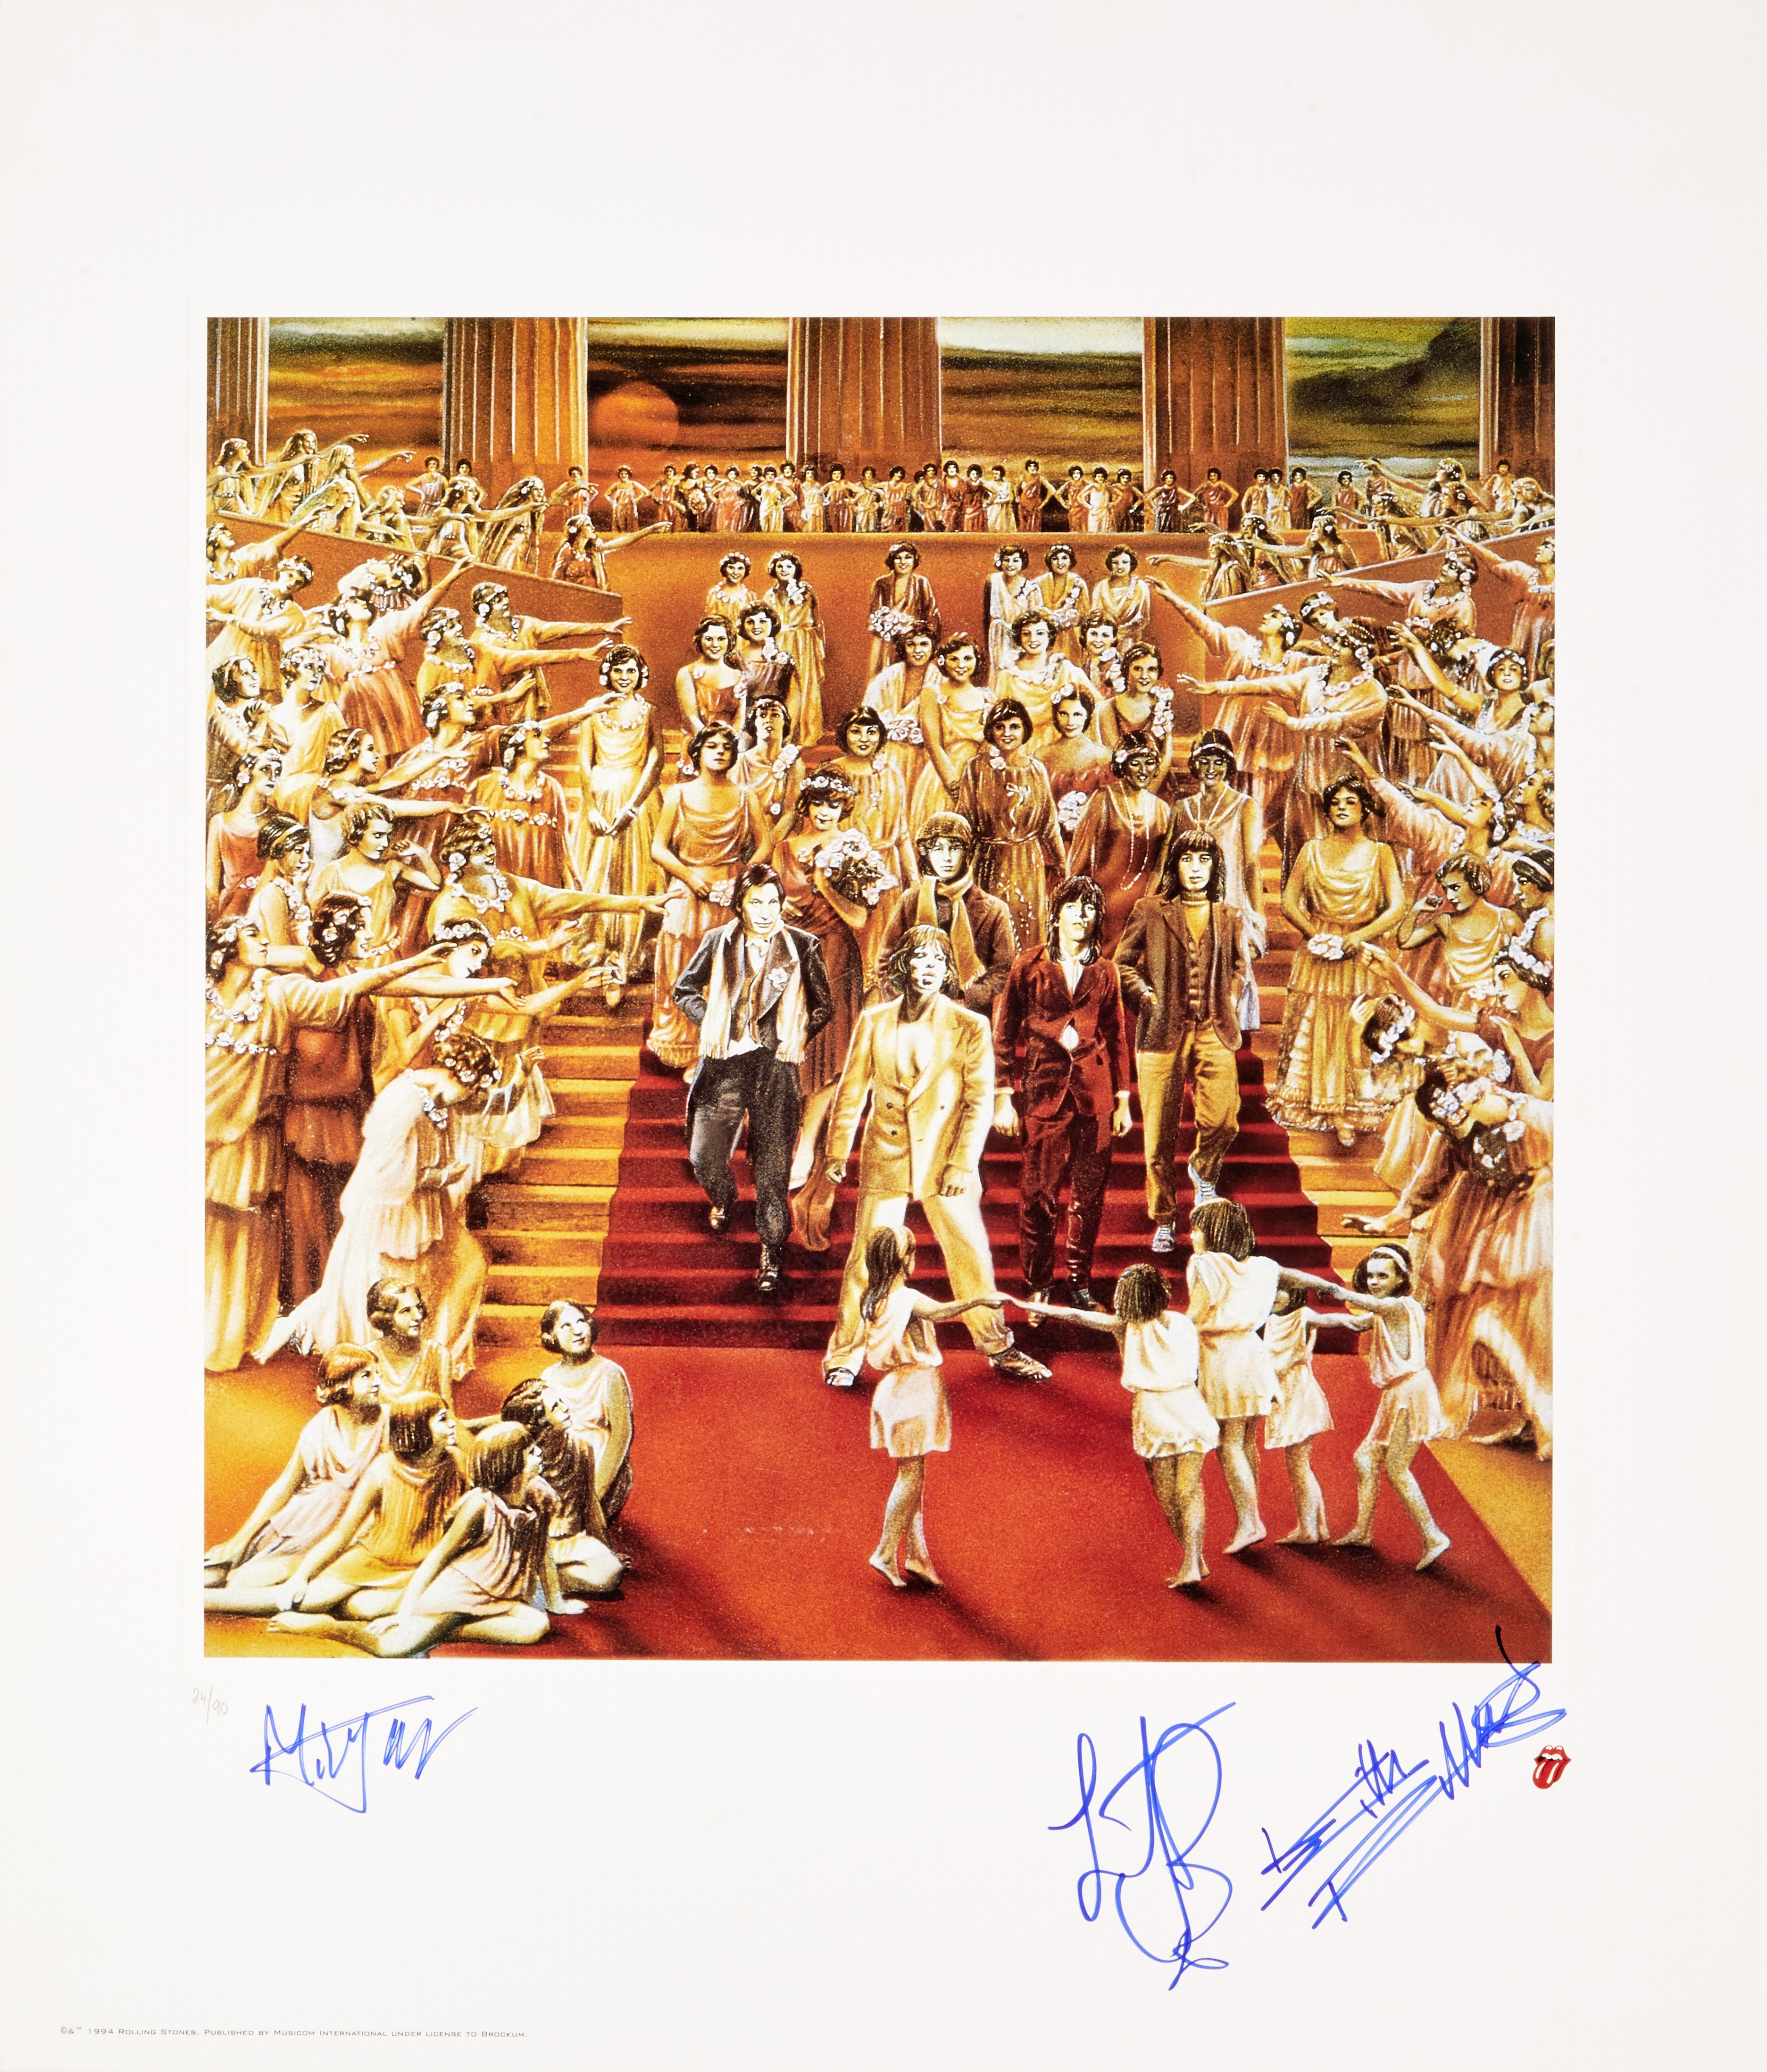 Lot 44 - A Rolling Stones Limited Edition Signed Print Of The Album Cover It's Only Rock 'N Roll mid 1990s